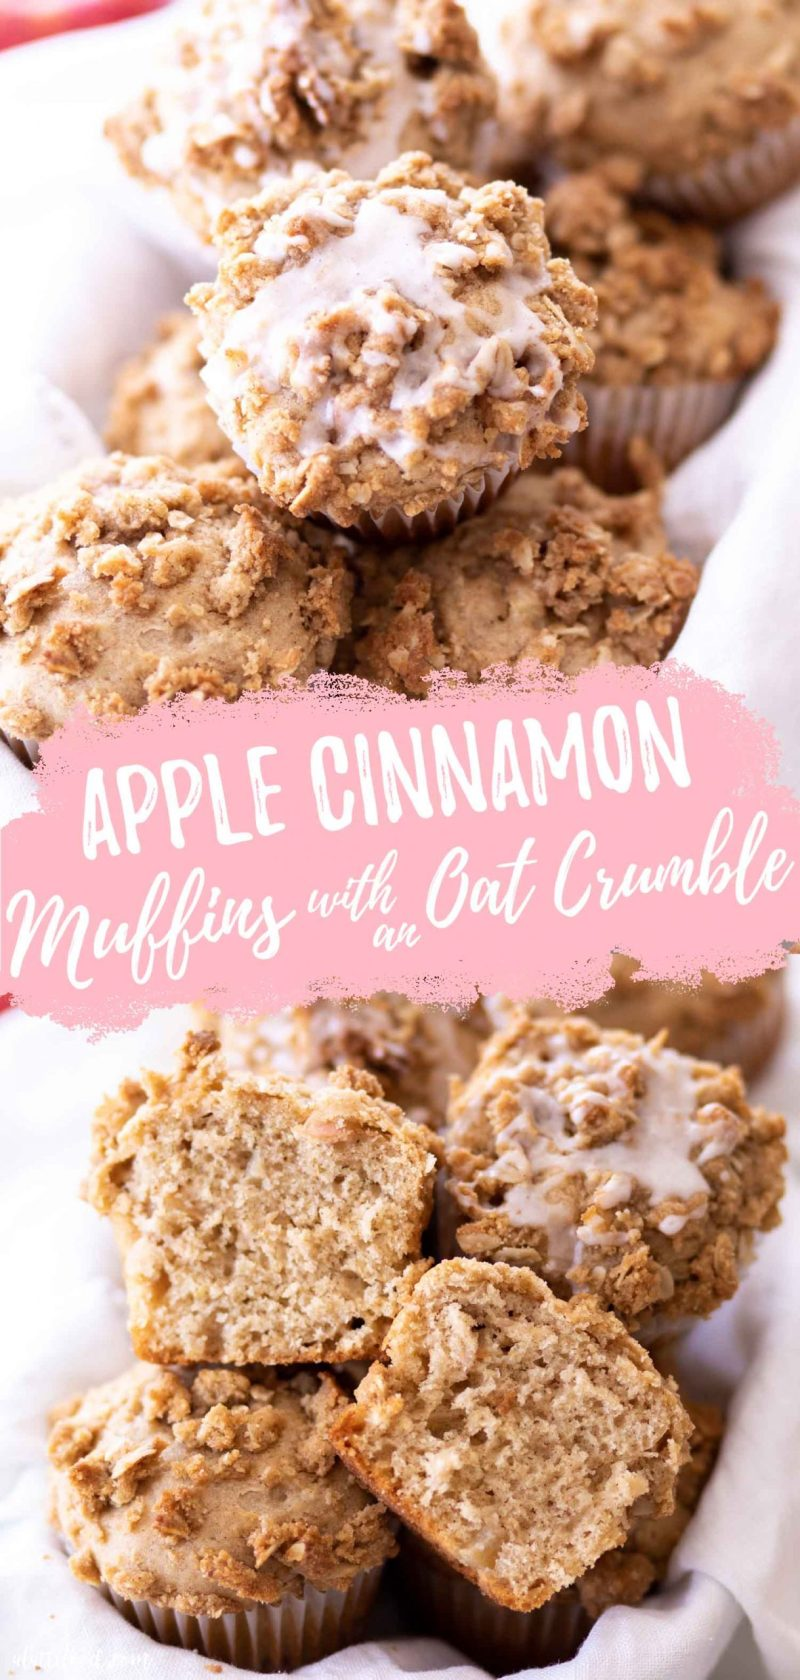 my favorite glazed apple cinnamon muffins with crumb topping